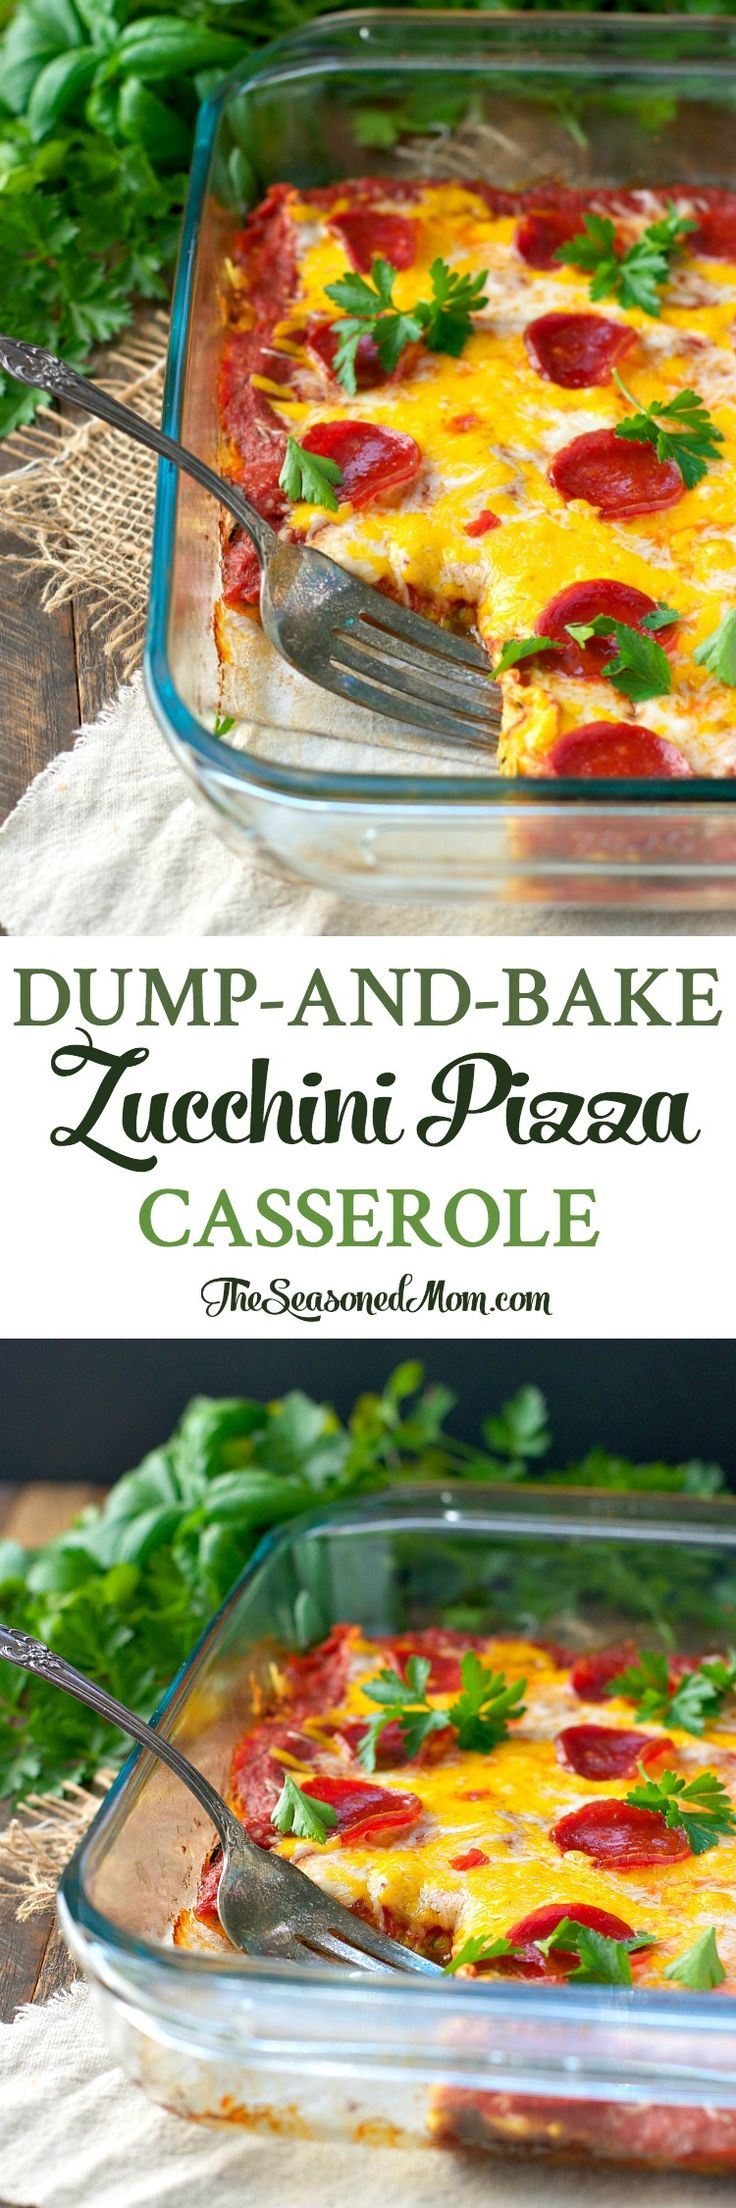 Just 10 minutes of prep for this easy low-carb dinner: Dump-and-Bake Zucchini Pizza Casserole. Perfect gluten free, low carb, freezer meal to use the spiralizer!